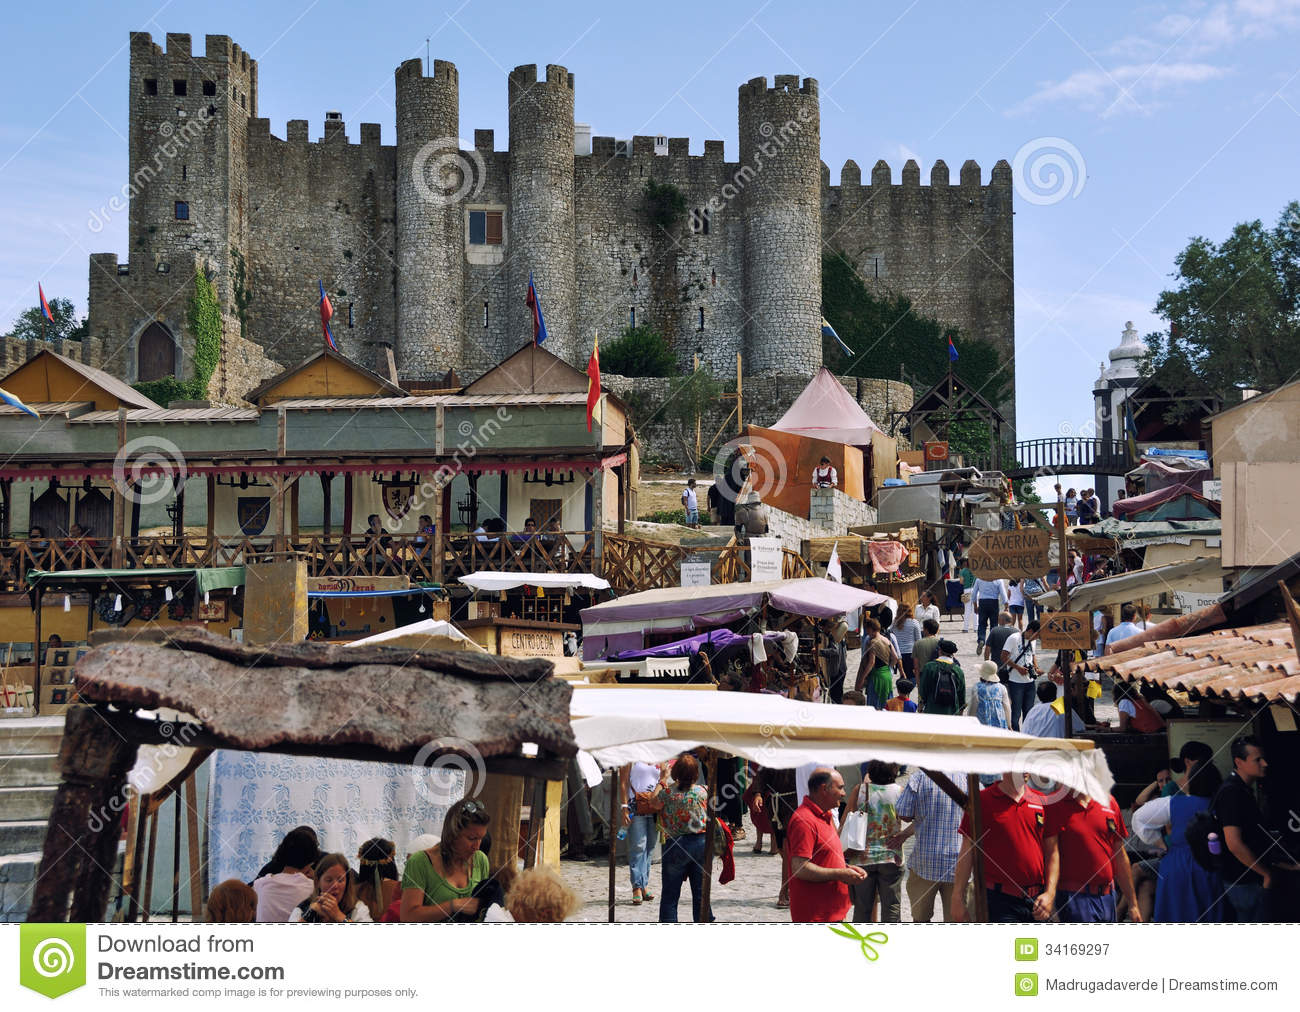 ... , Portugal. For two week the town hosts the market around the Castle